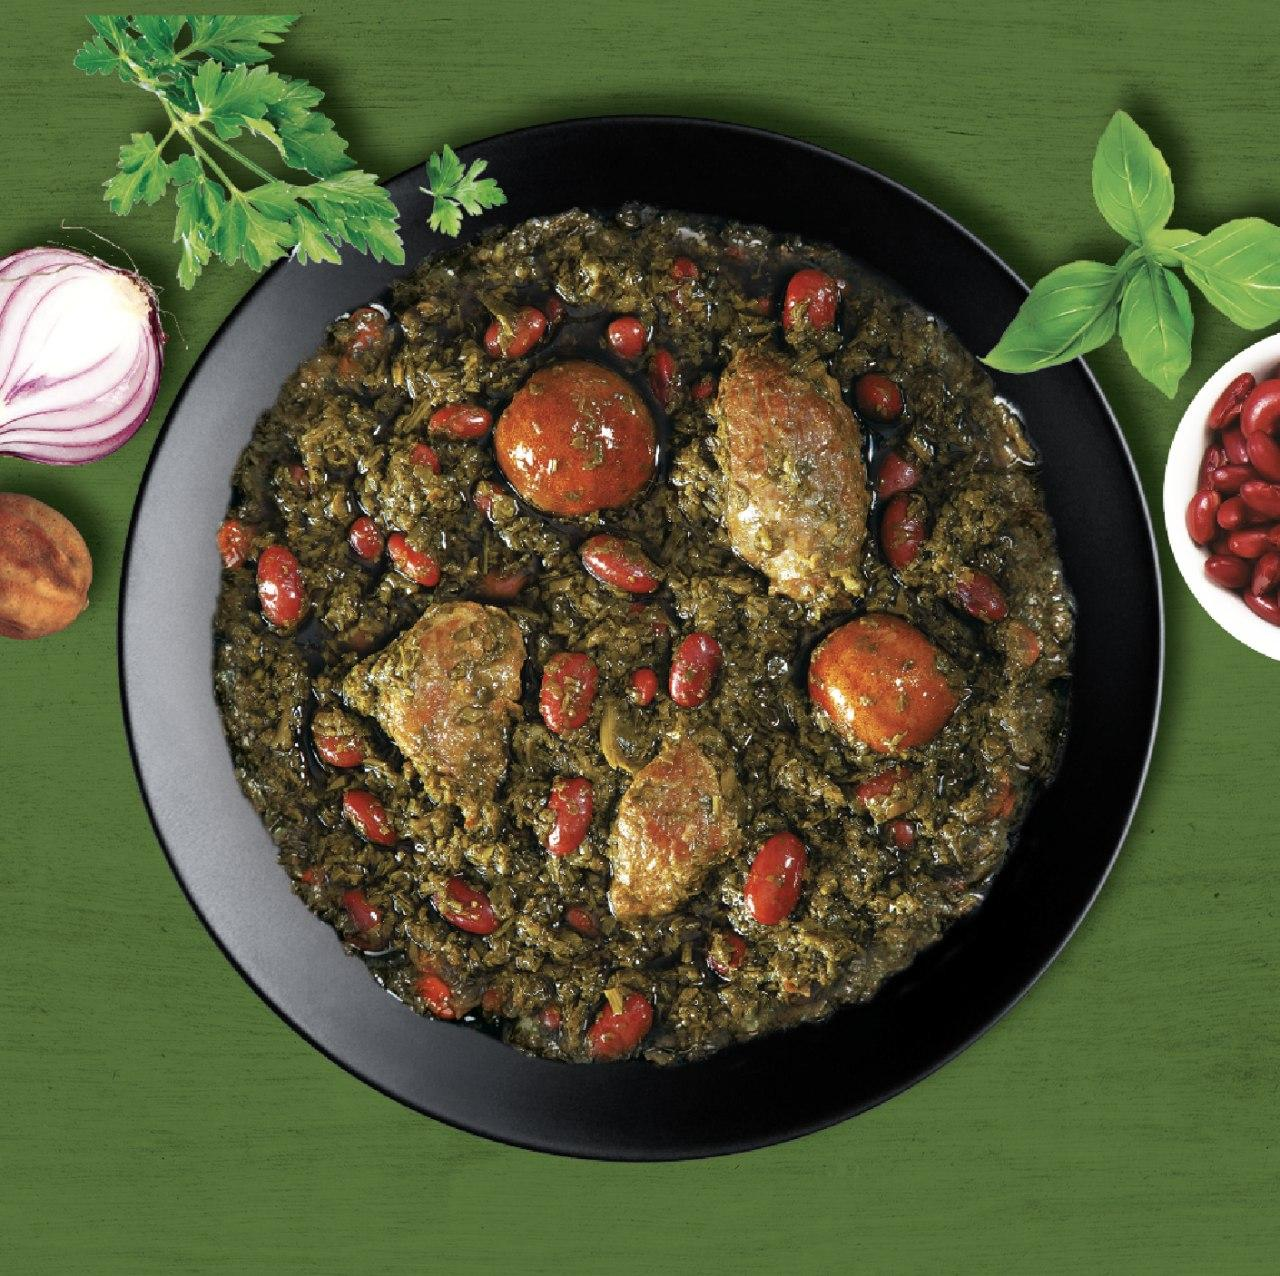 Mixed Herbs Stew With Meat